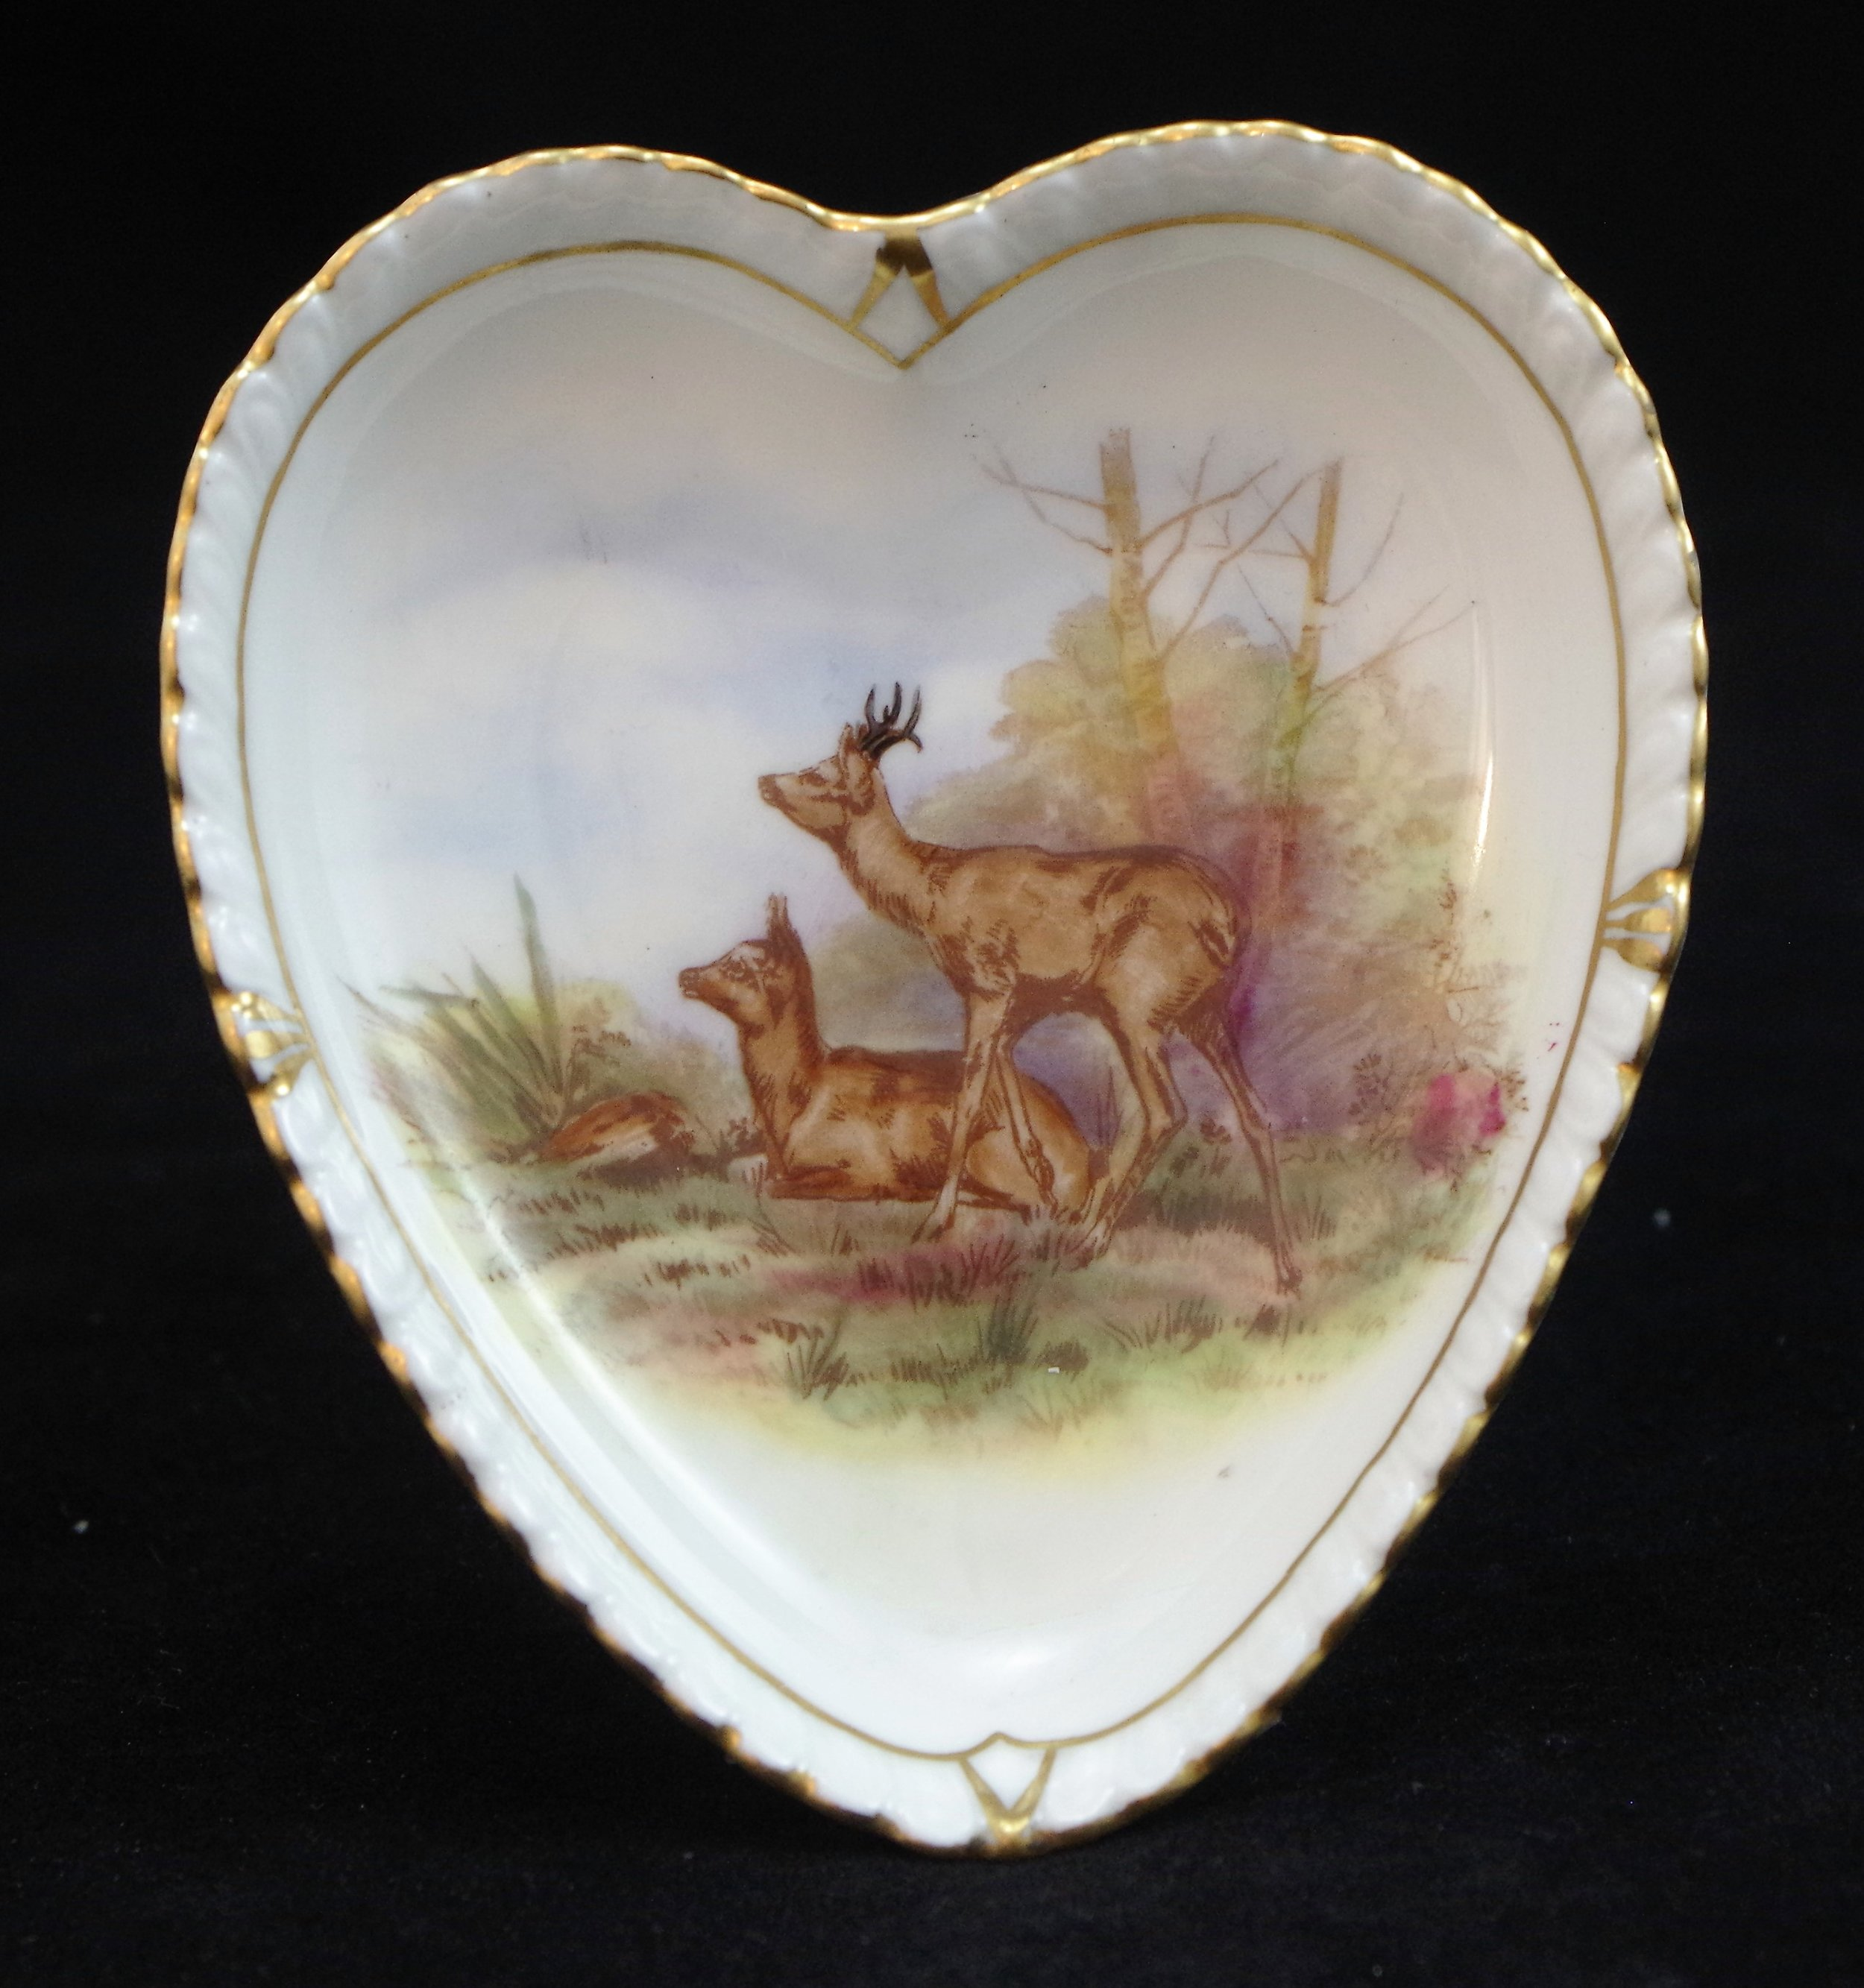 royal-crown-derby-heart-shape-gadroon-tray-deer-hunting-scene